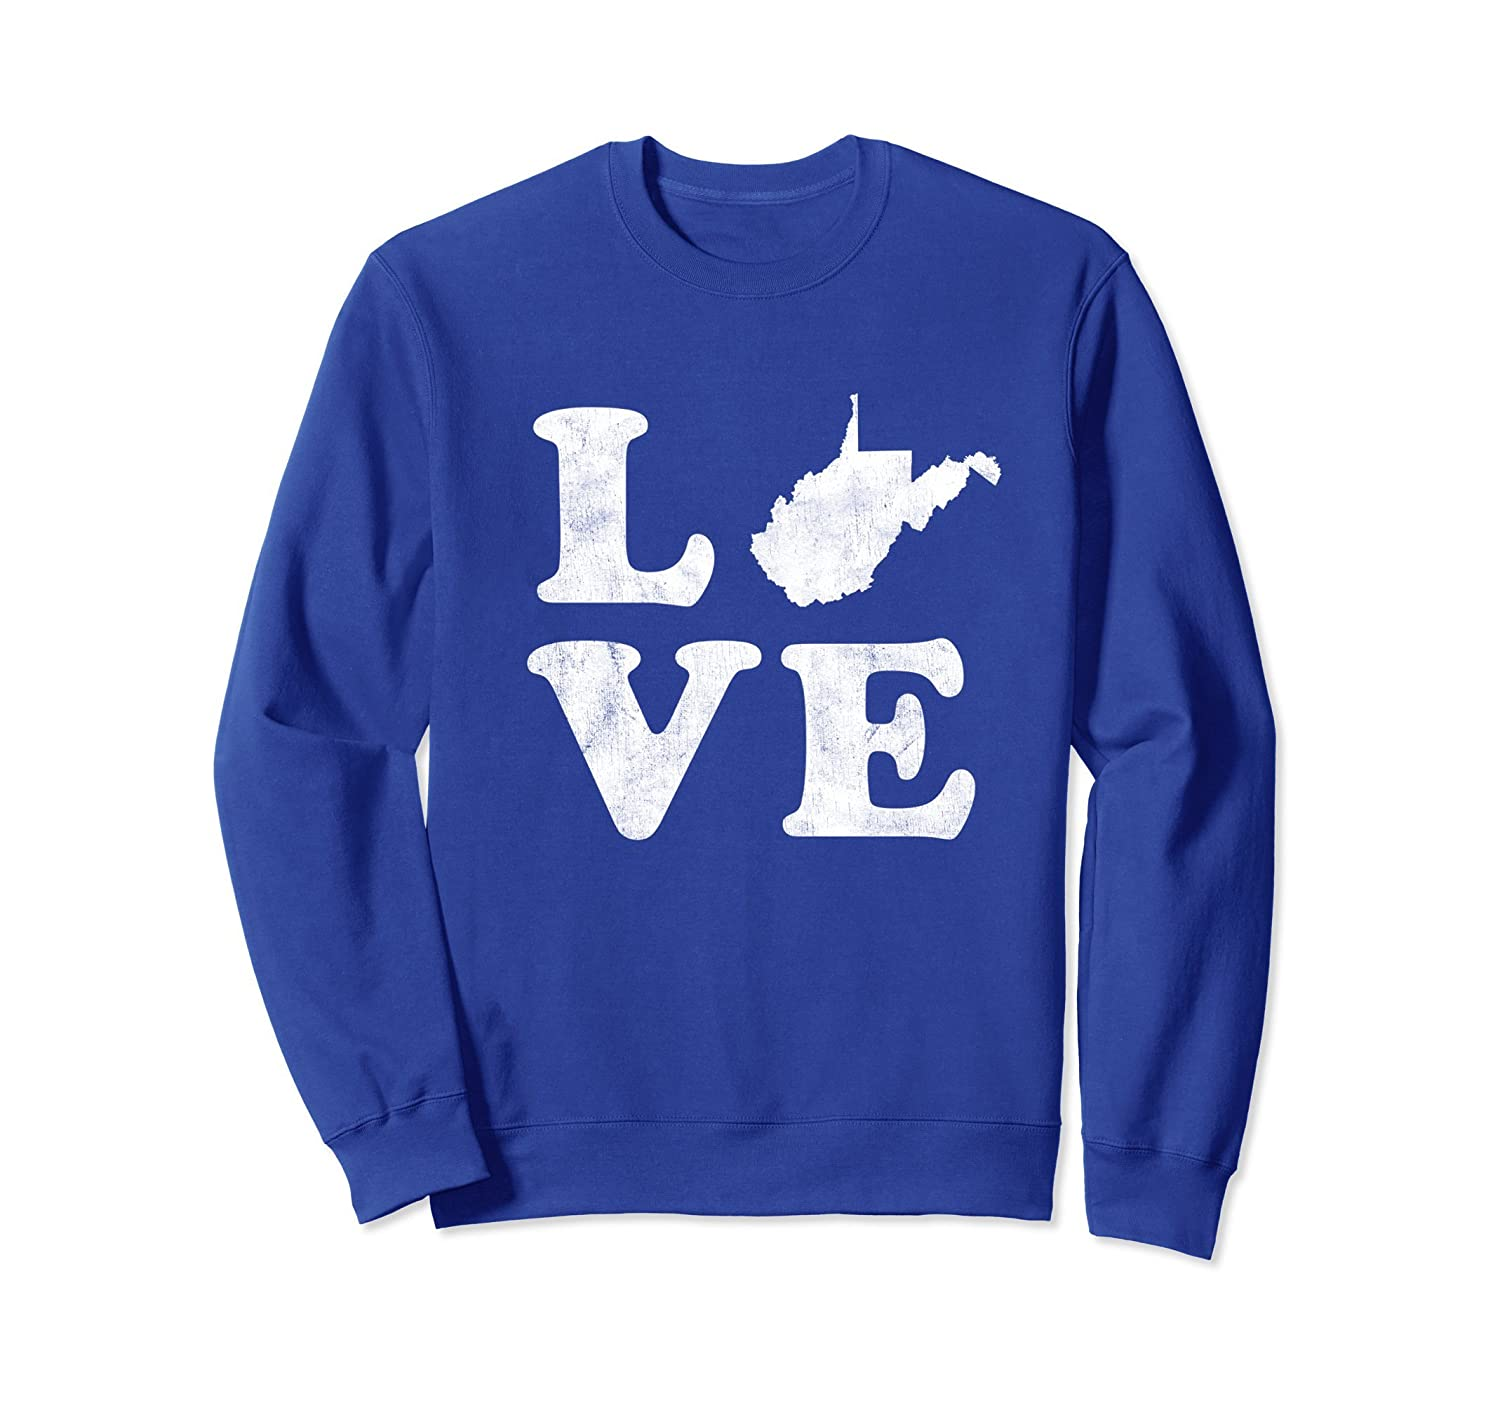 9610d55fe7a West Virginia Sweatshirt ...